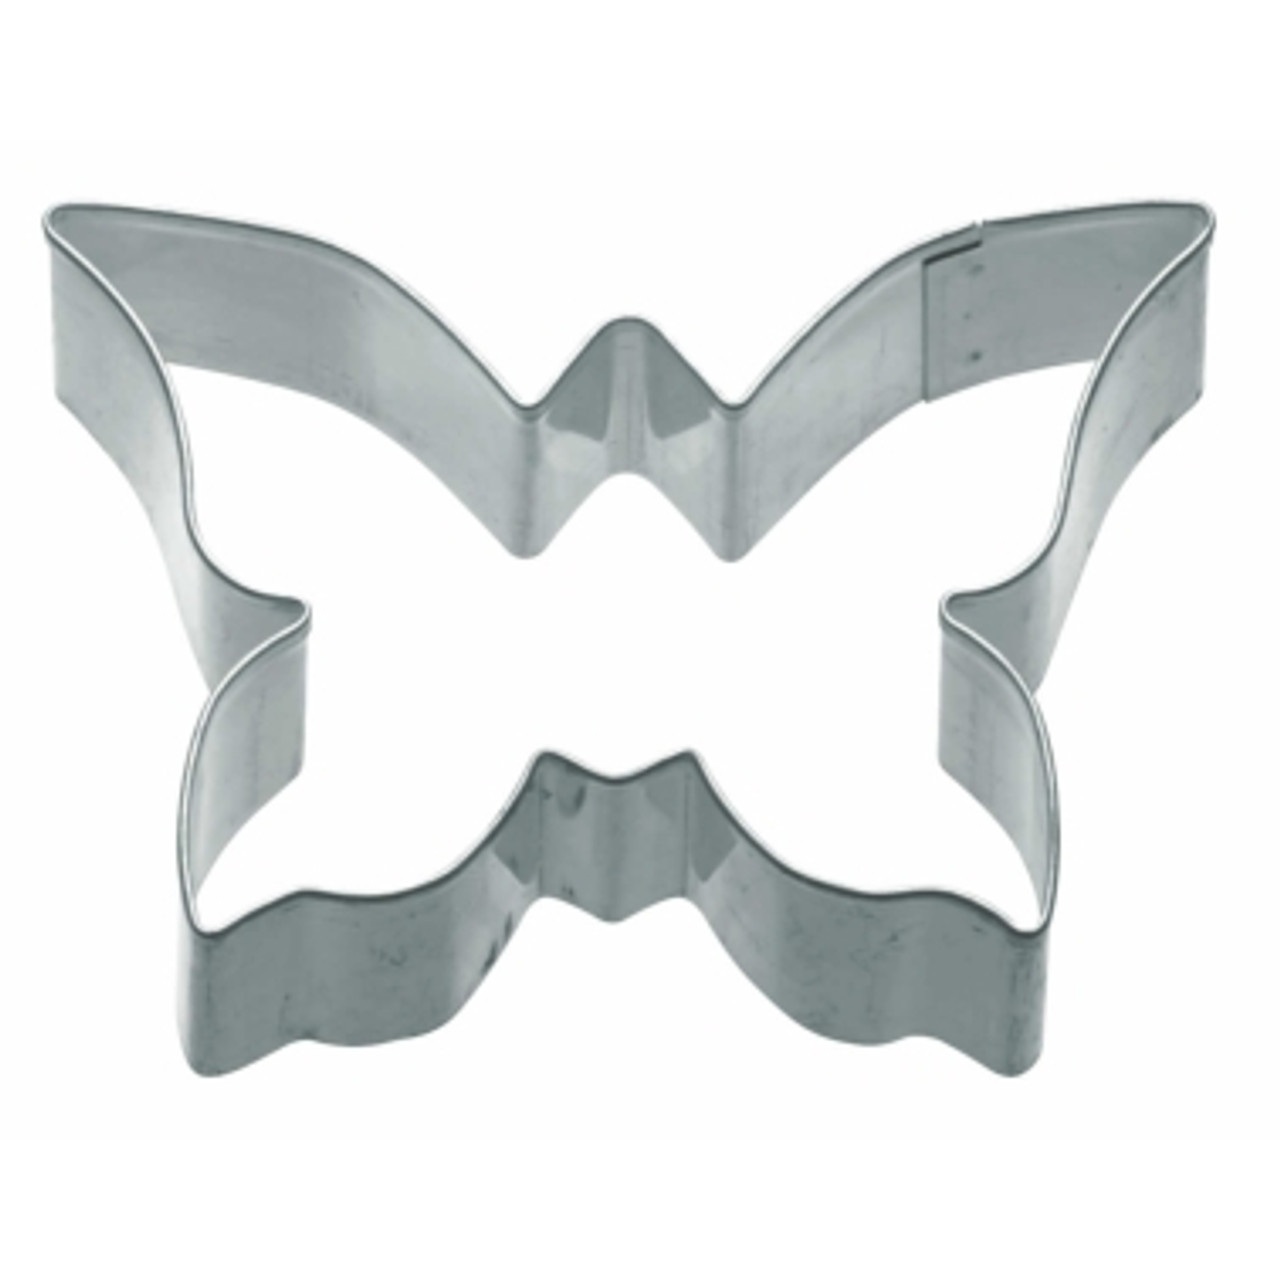 Butterfly Shaped Metal Cookie Cutter 7.5cm